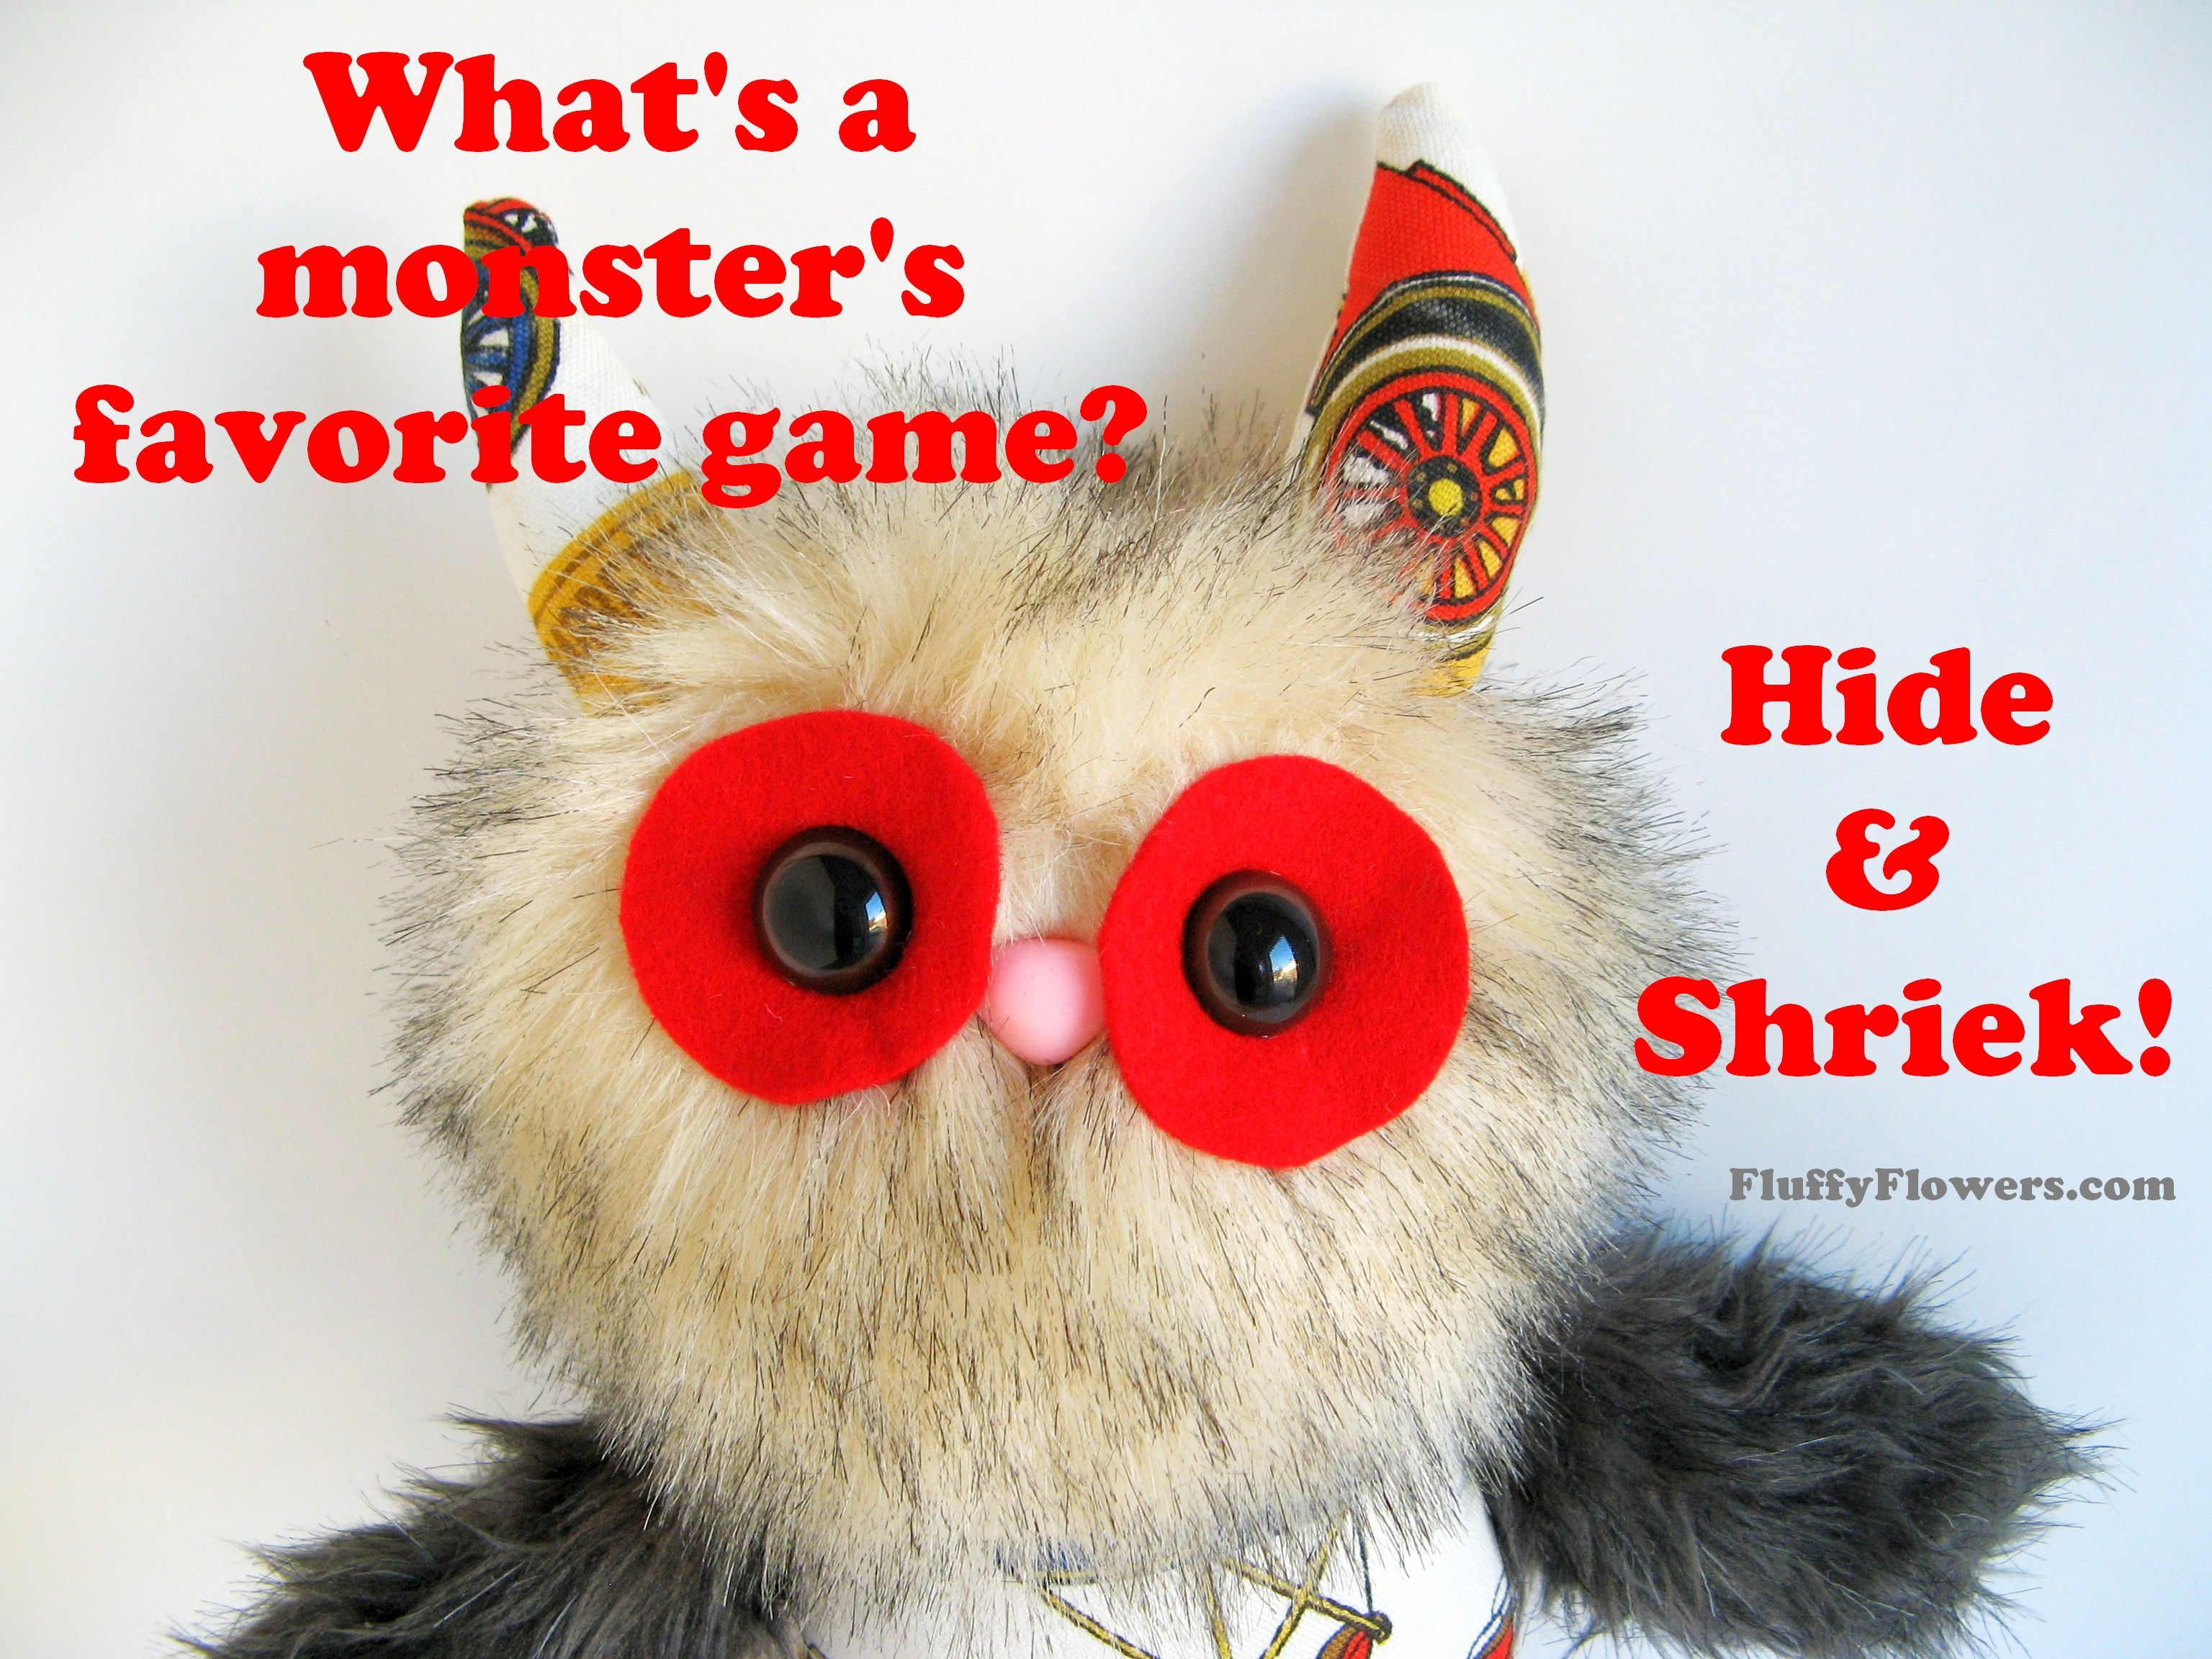 cute & clean game joke for children featuring an adorable